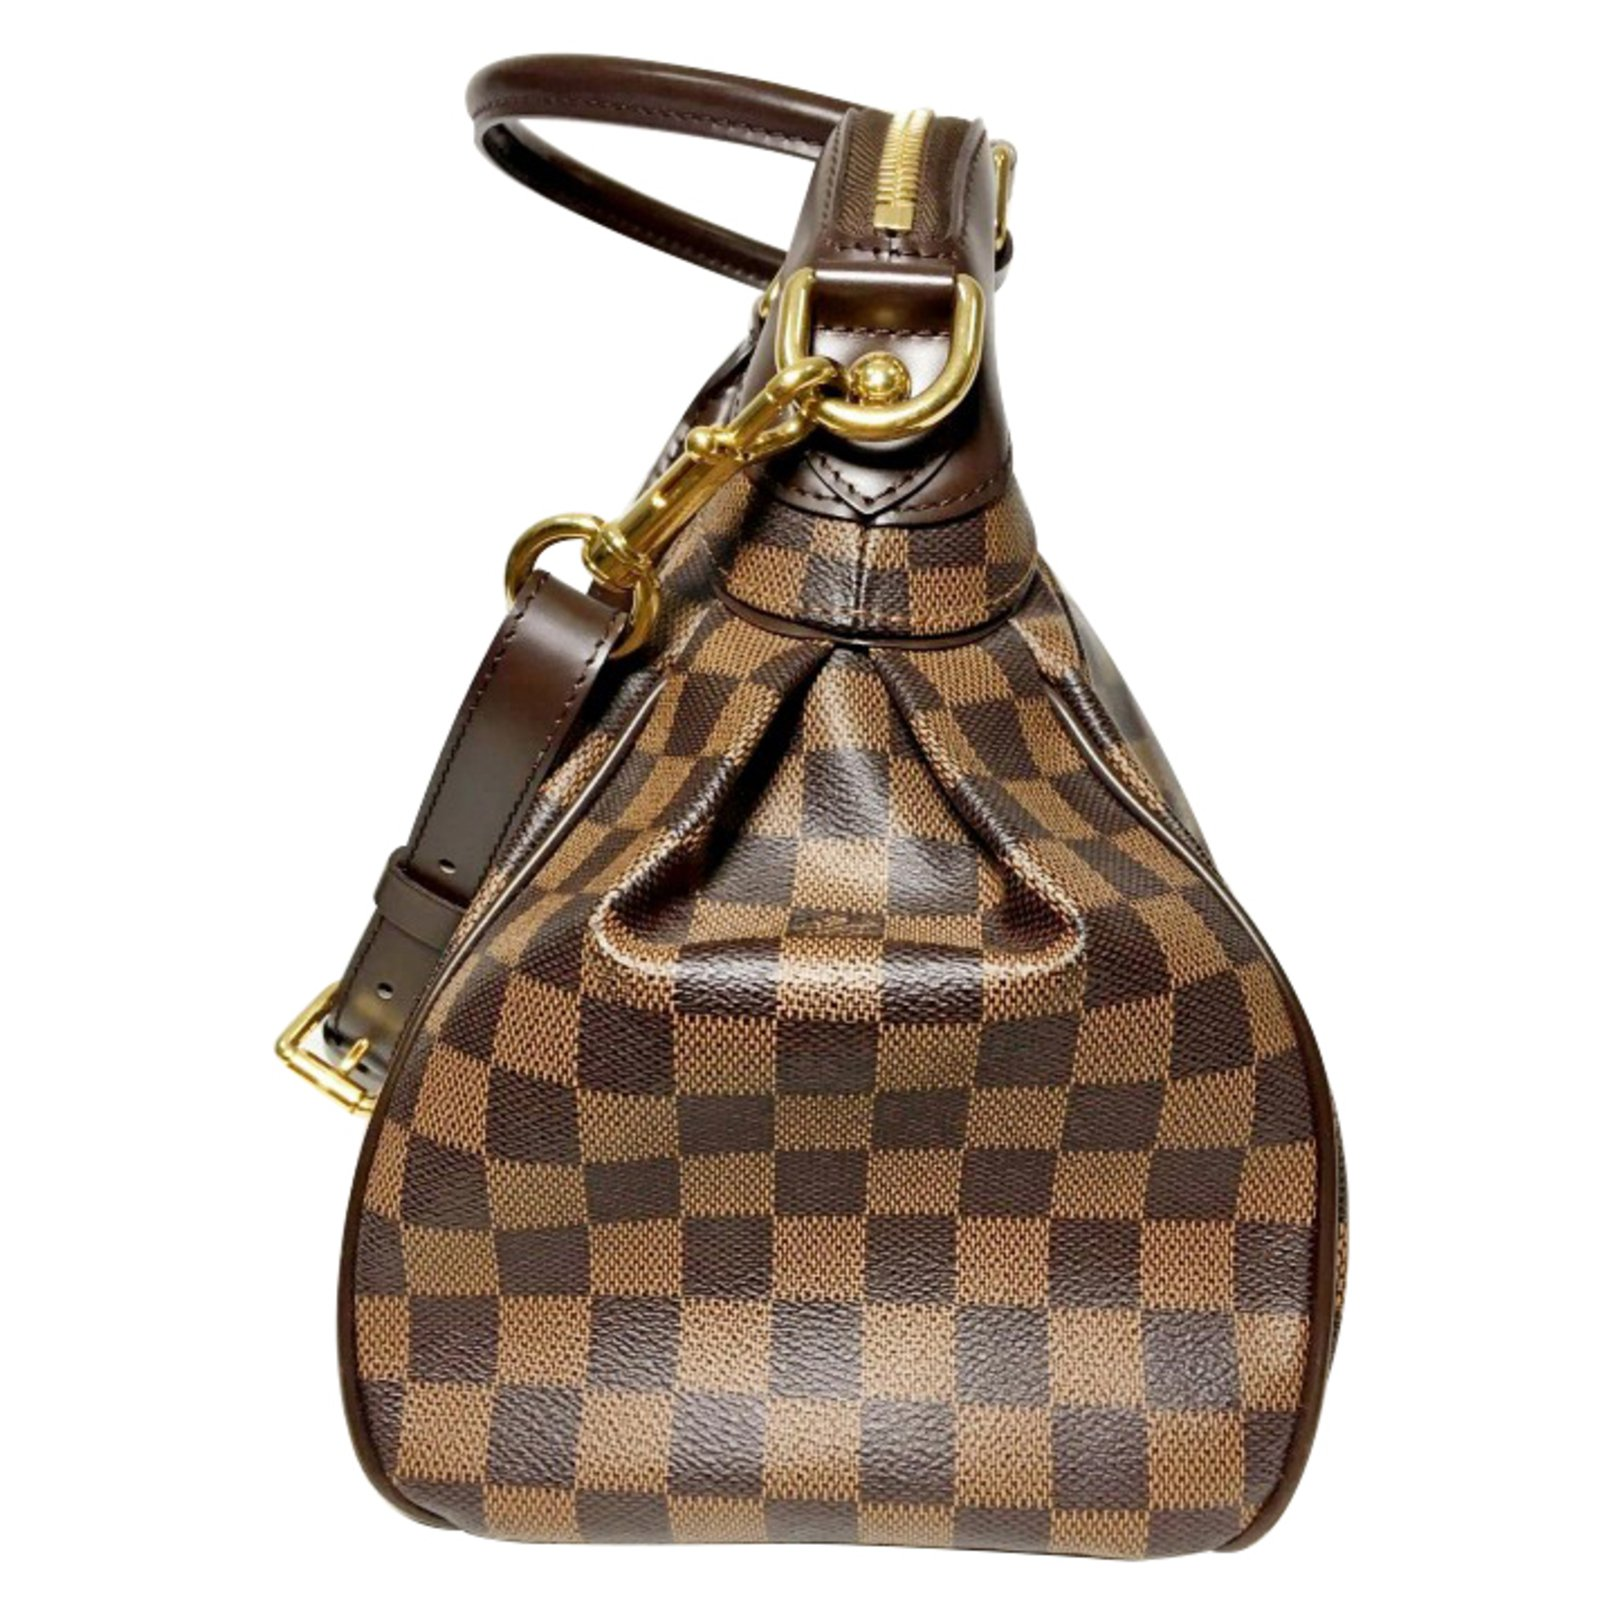 7f5f992baff5 Louis Vuitton Damier Ebene Trevi GM Handbags Leather Brown ref.35131 - Joli  Closet